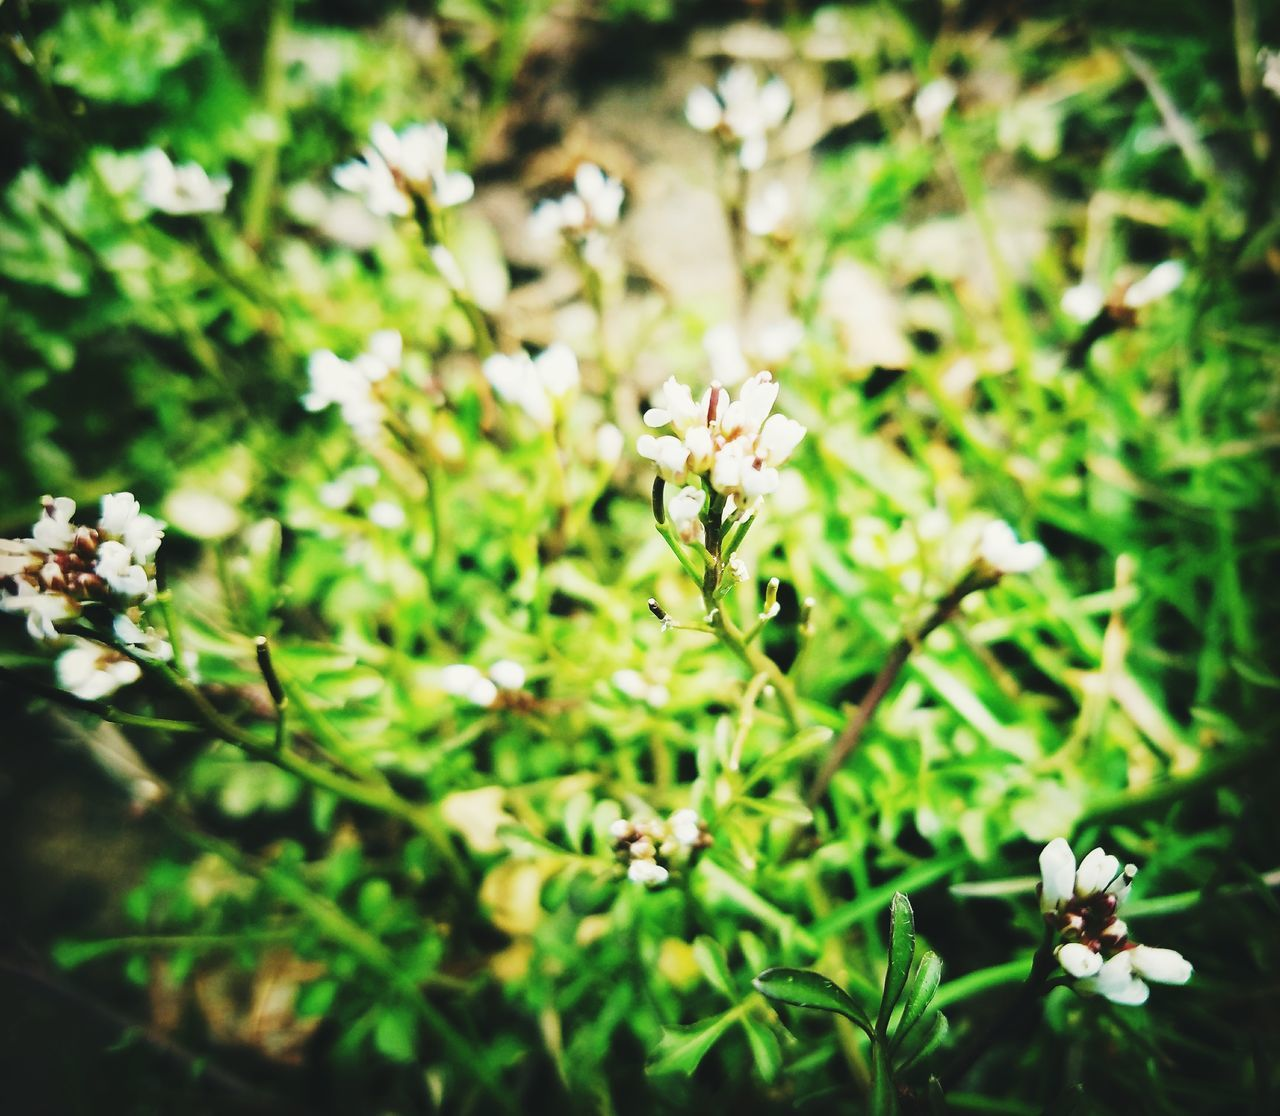 flower, nature, growth, beauty in nature, blossom, fragility, no people, petal, plant, outdoors, day, freshness, flower head, blooming, close-up, animal themes